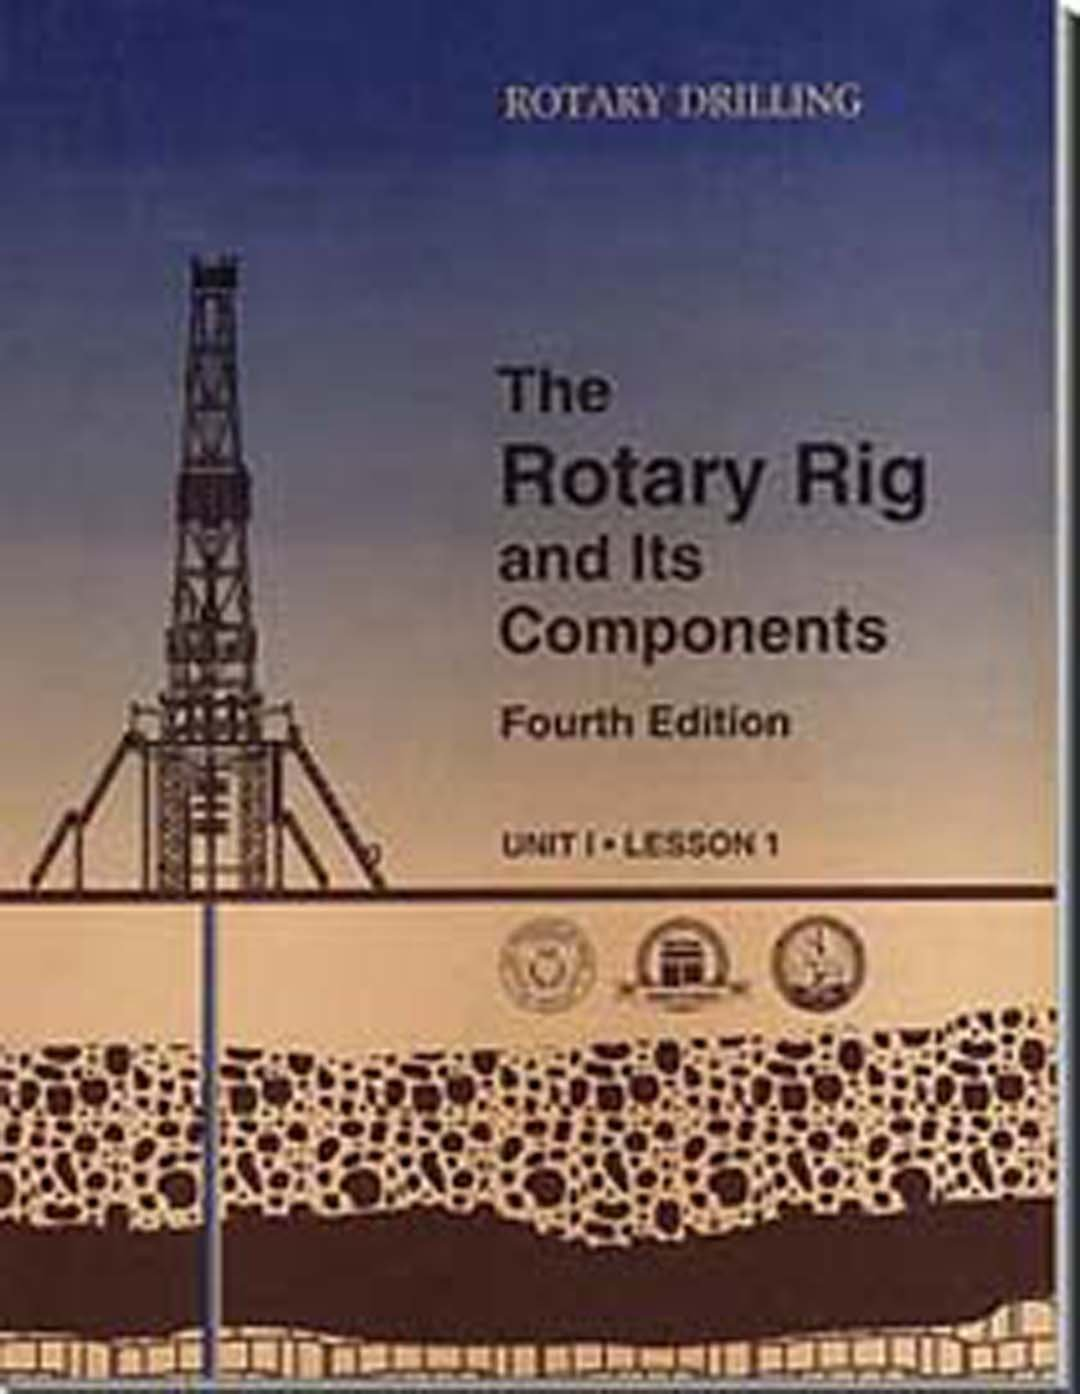 The Rotary Rig And Its Components  Rotary Drilling Series ; Unit 1 Lesson 1